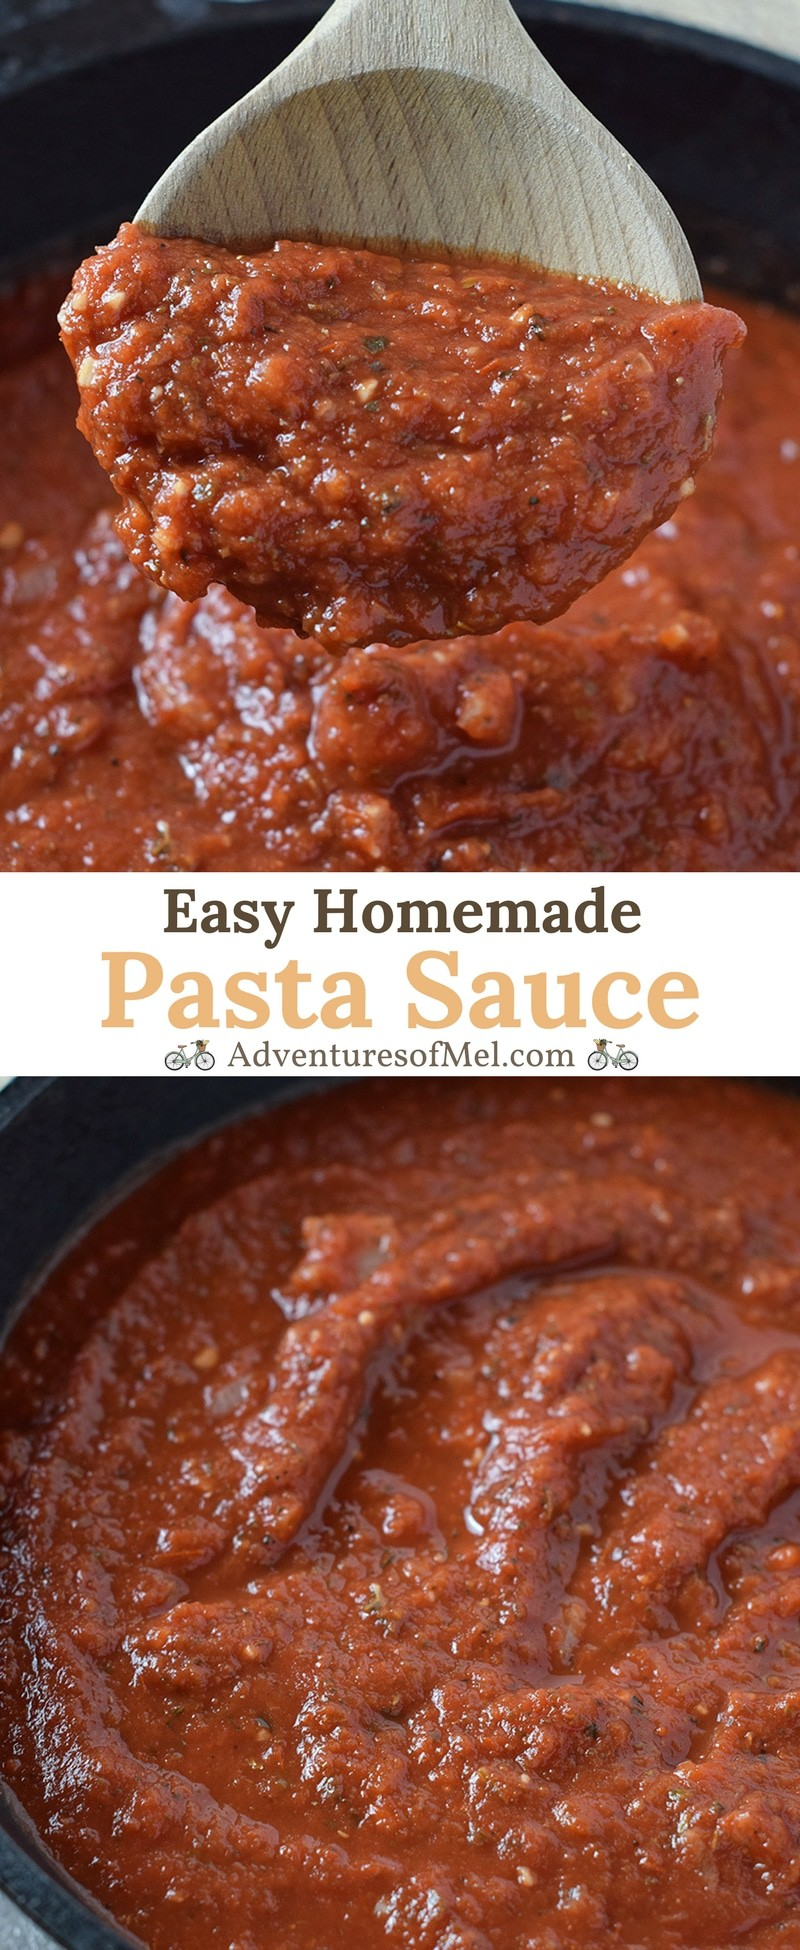 Homemade Pasta Sauce for spaghetti, lasagna, and other favorite pasta dishes. Simple ingredients and delicious flavor, good with meat or go meatless!